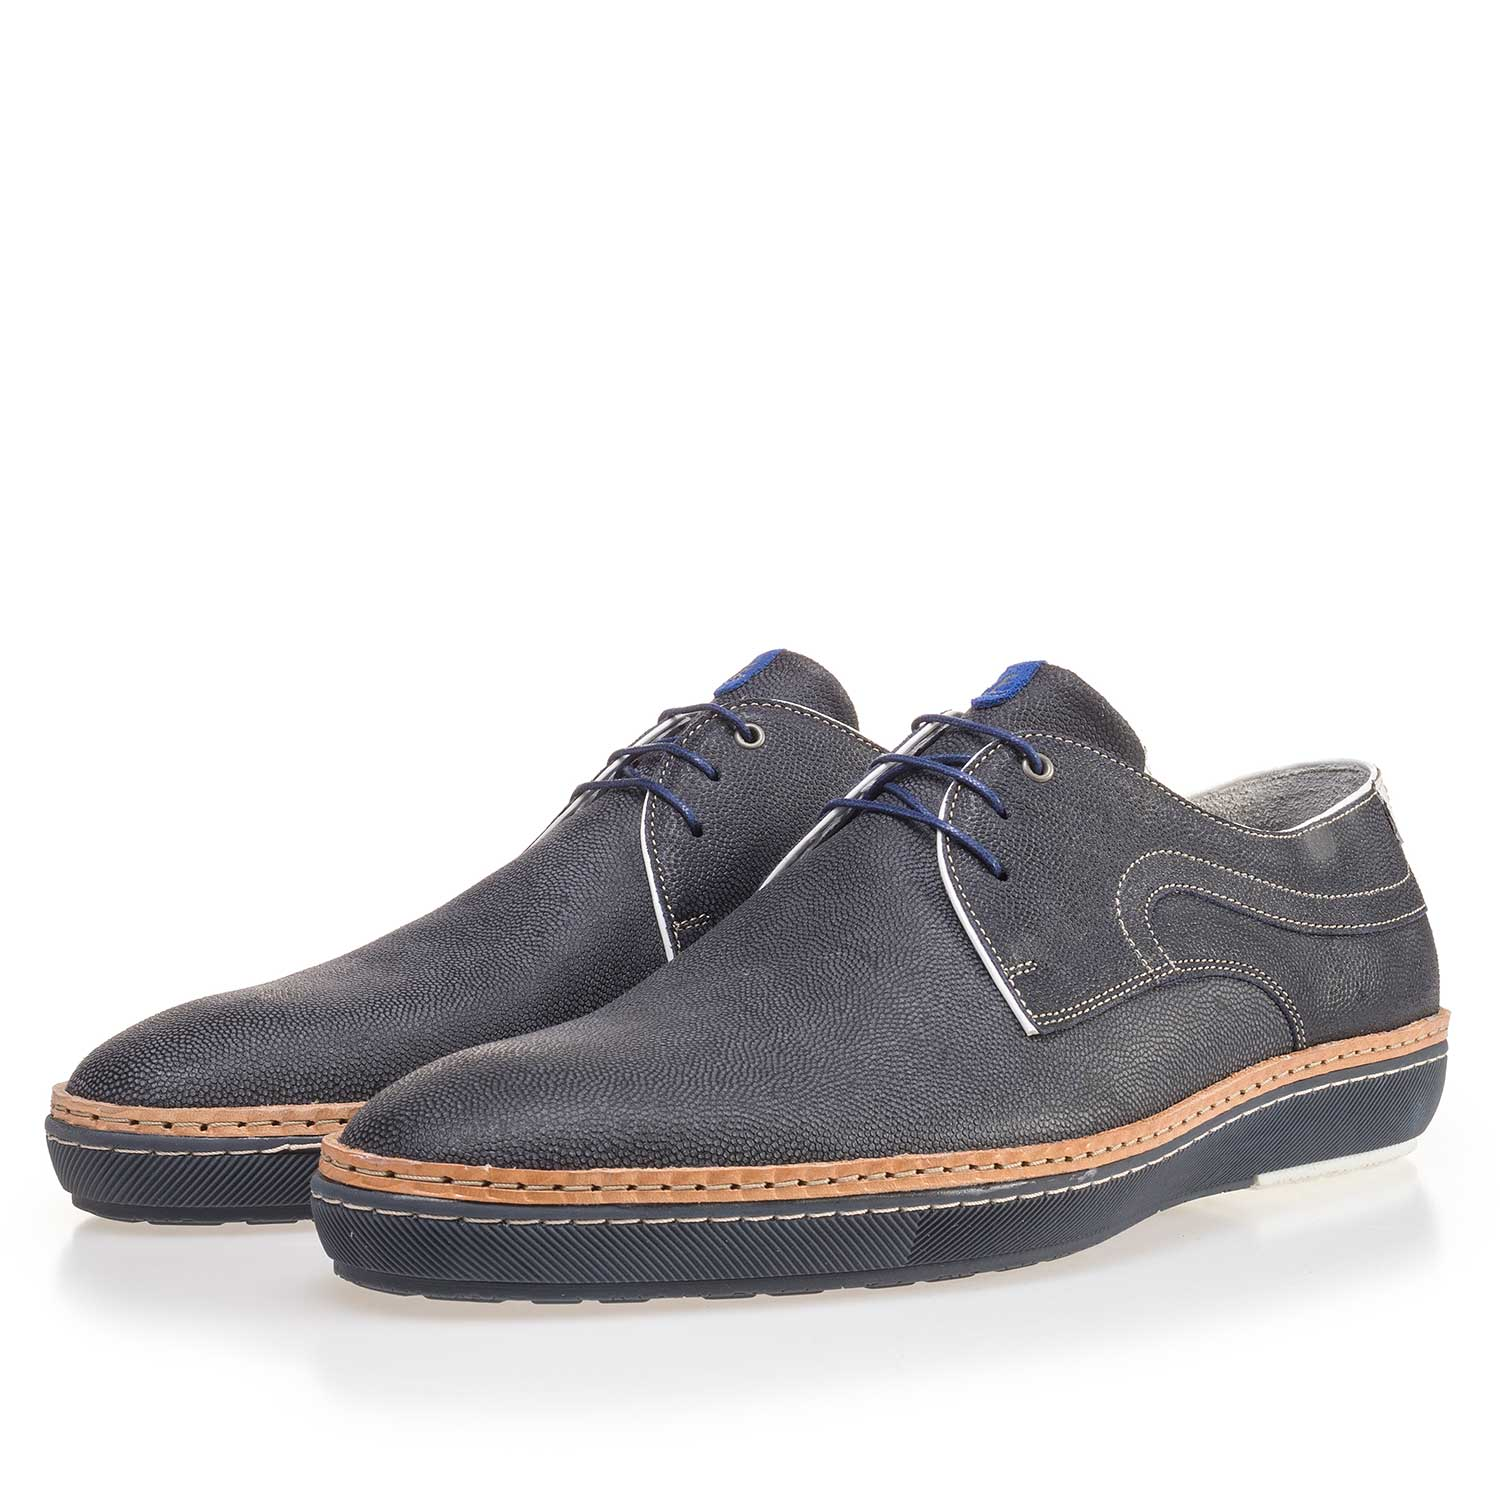 14020/00 - Blue patterned lace shoe made of suede leather